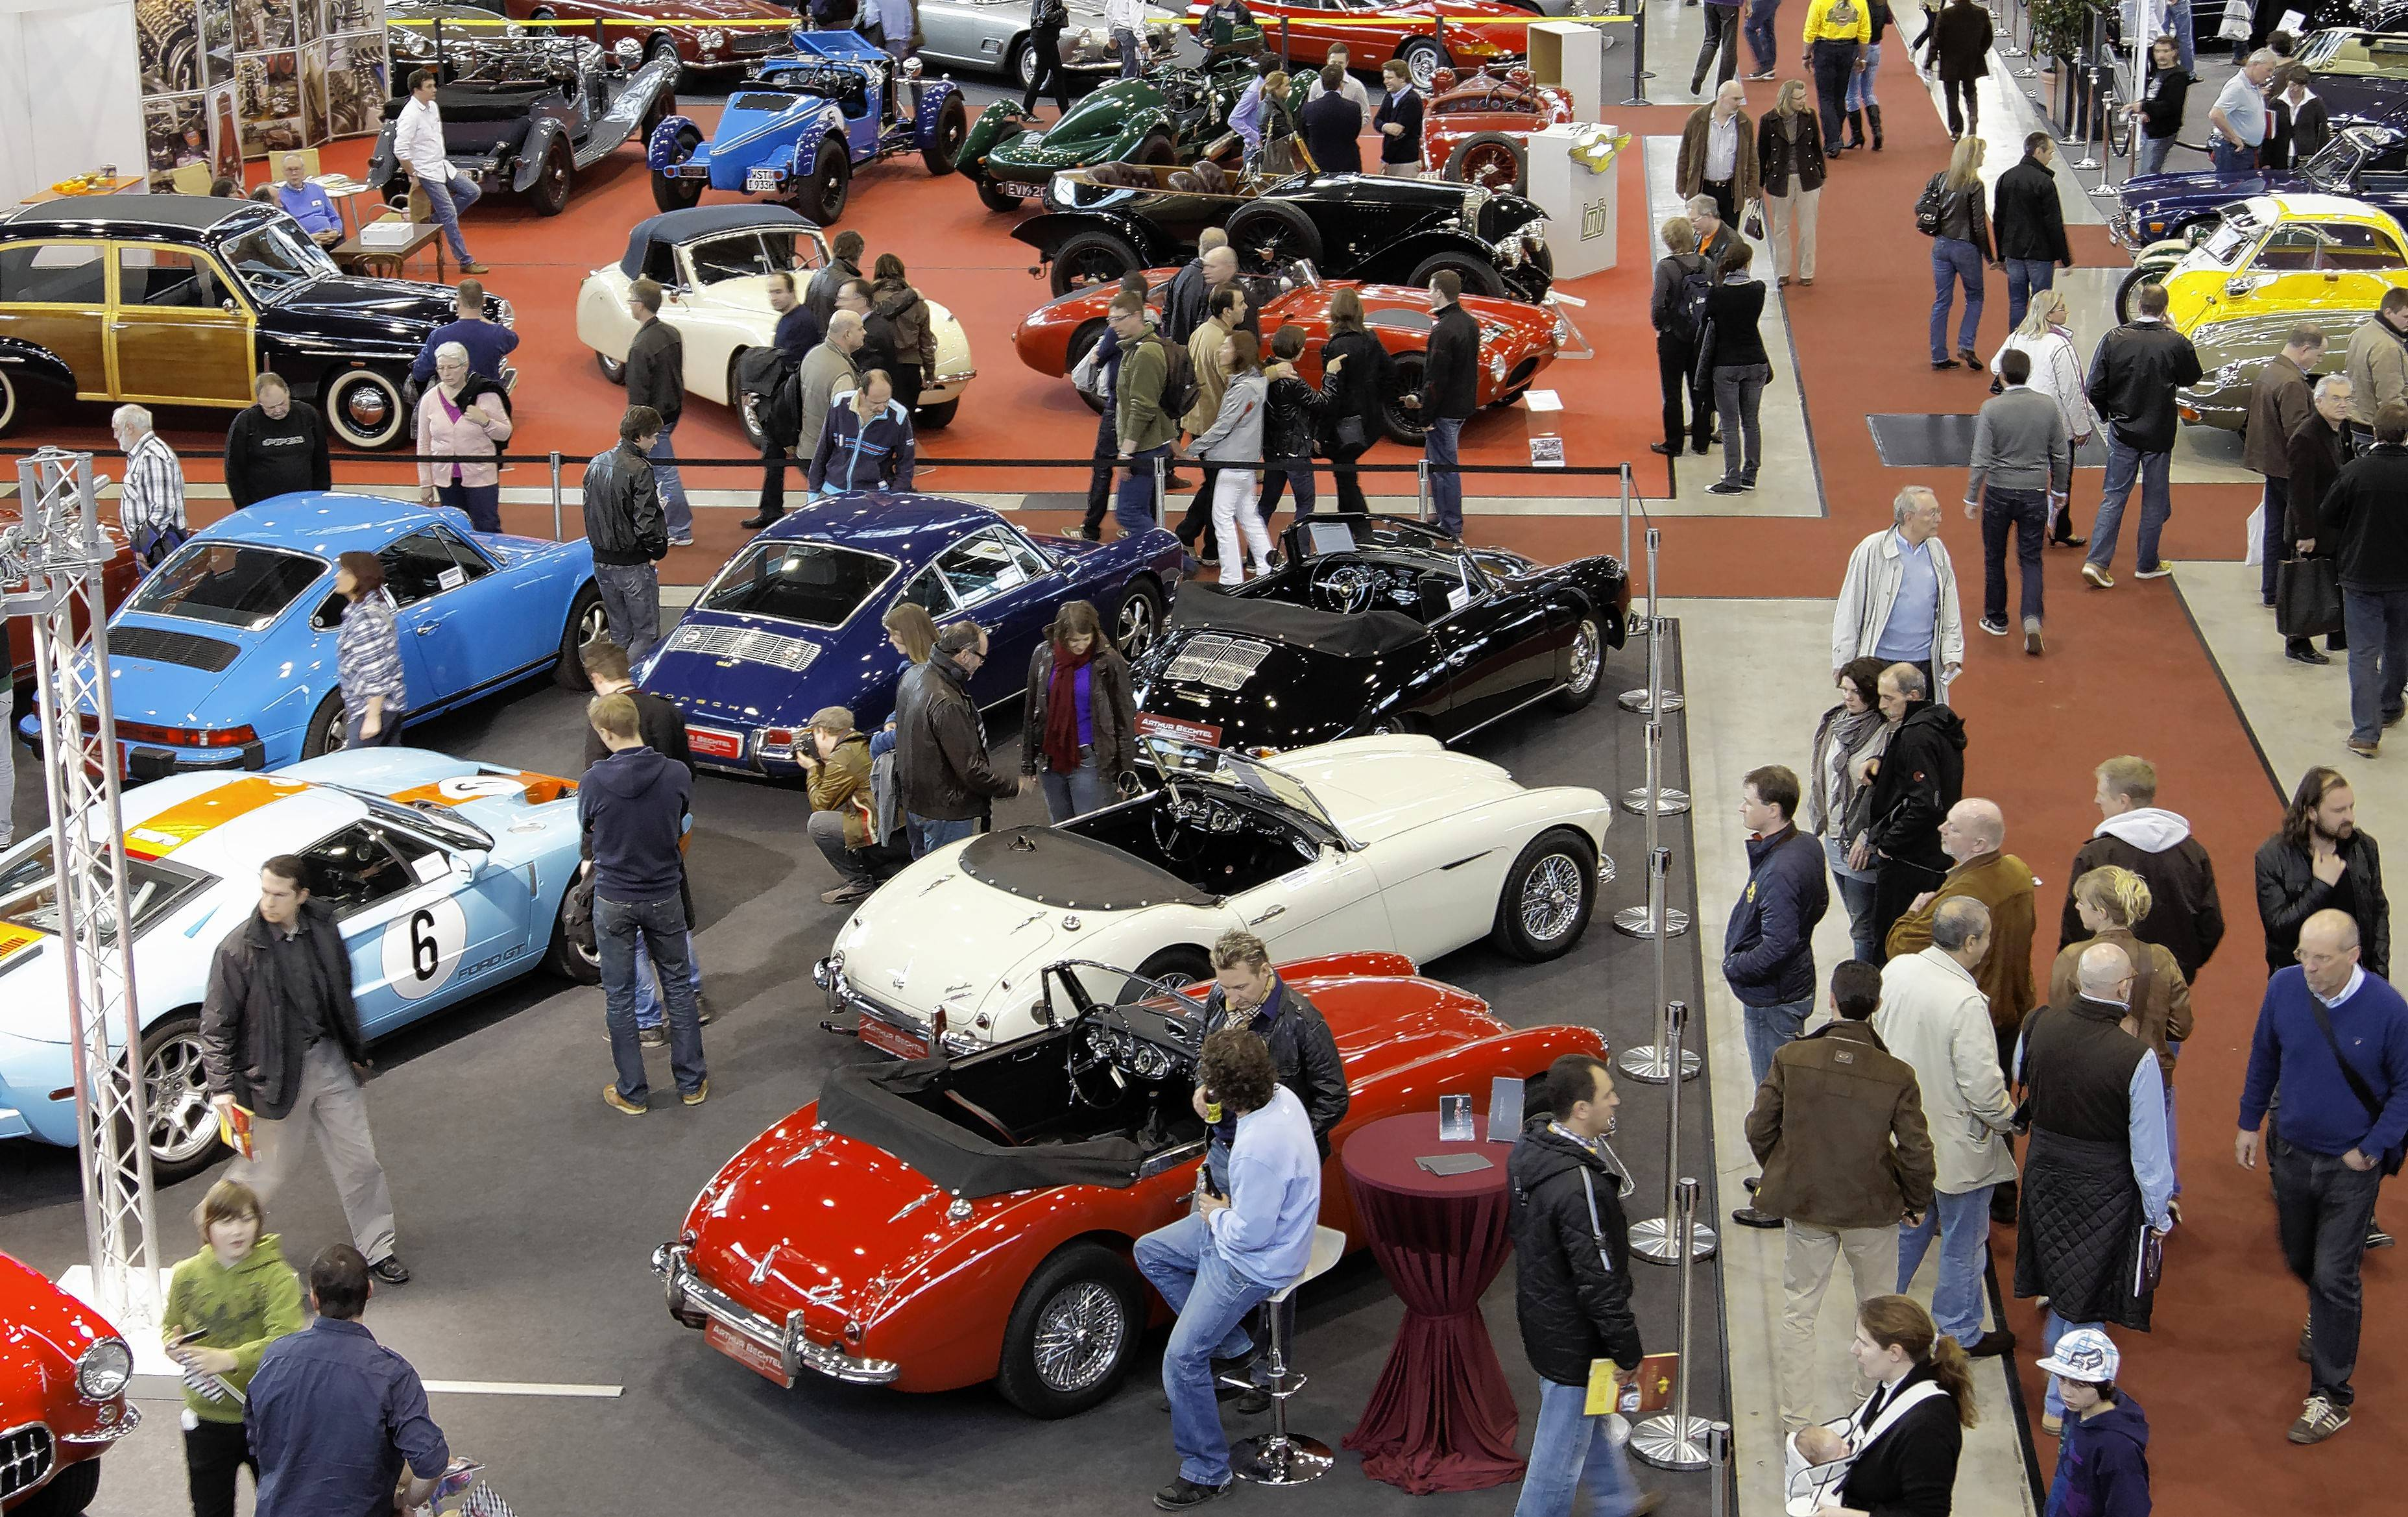 The Chicago Auto Show attracts crowds of people looking for their next ride, or simply taking in the amazing sights. Look for Family Day activities on Monday, Feb. 15; Women's Day on Tuesday, Feb. 16; Telemundo Hispanic Heritage Day, Friday, Feb. 19; and a food drive Feb. 17-19.